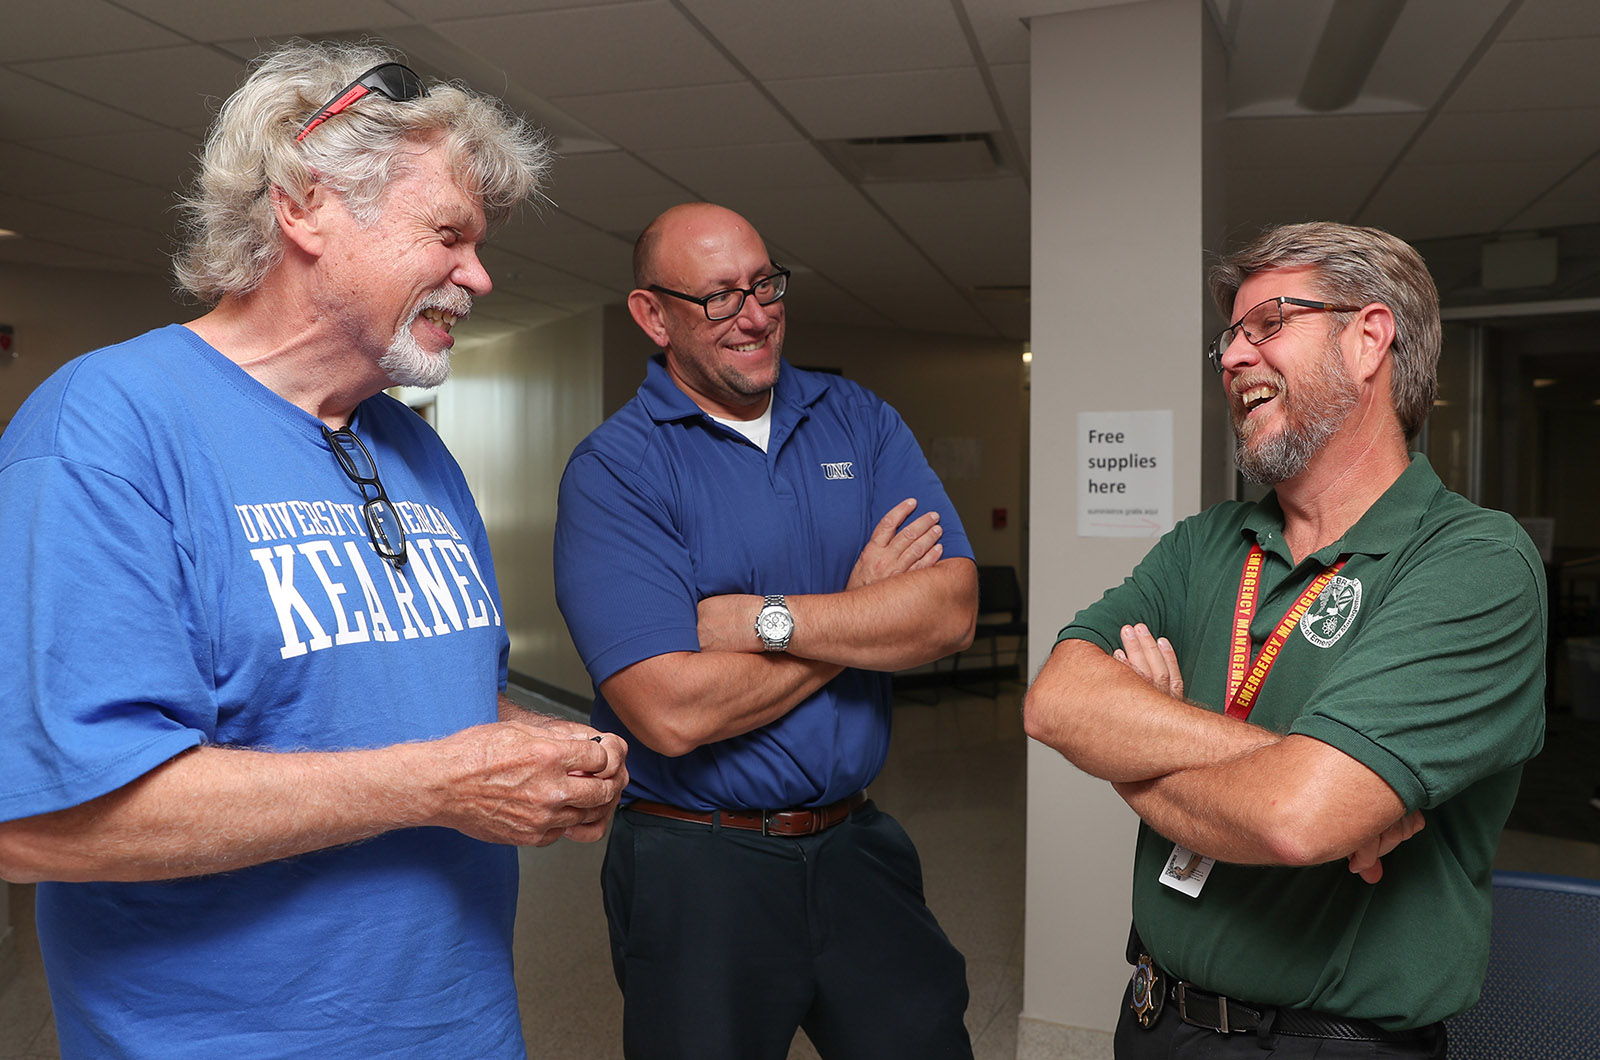 From left, Ken Labahn of La Grange, Illinois, chats with George Holman, UNK associate dean of student affairs and director of residence life, and Buffalo County Emergency Manager Darrin Lewis on Wednesday inside UNK's Centennial Towers West residence hall. Labahn was among the nearly 300 people impacted by Tuesday's flooding who stayed on the UNK campus. (Photo by Corbey R. Dorsey, UNK Communications)